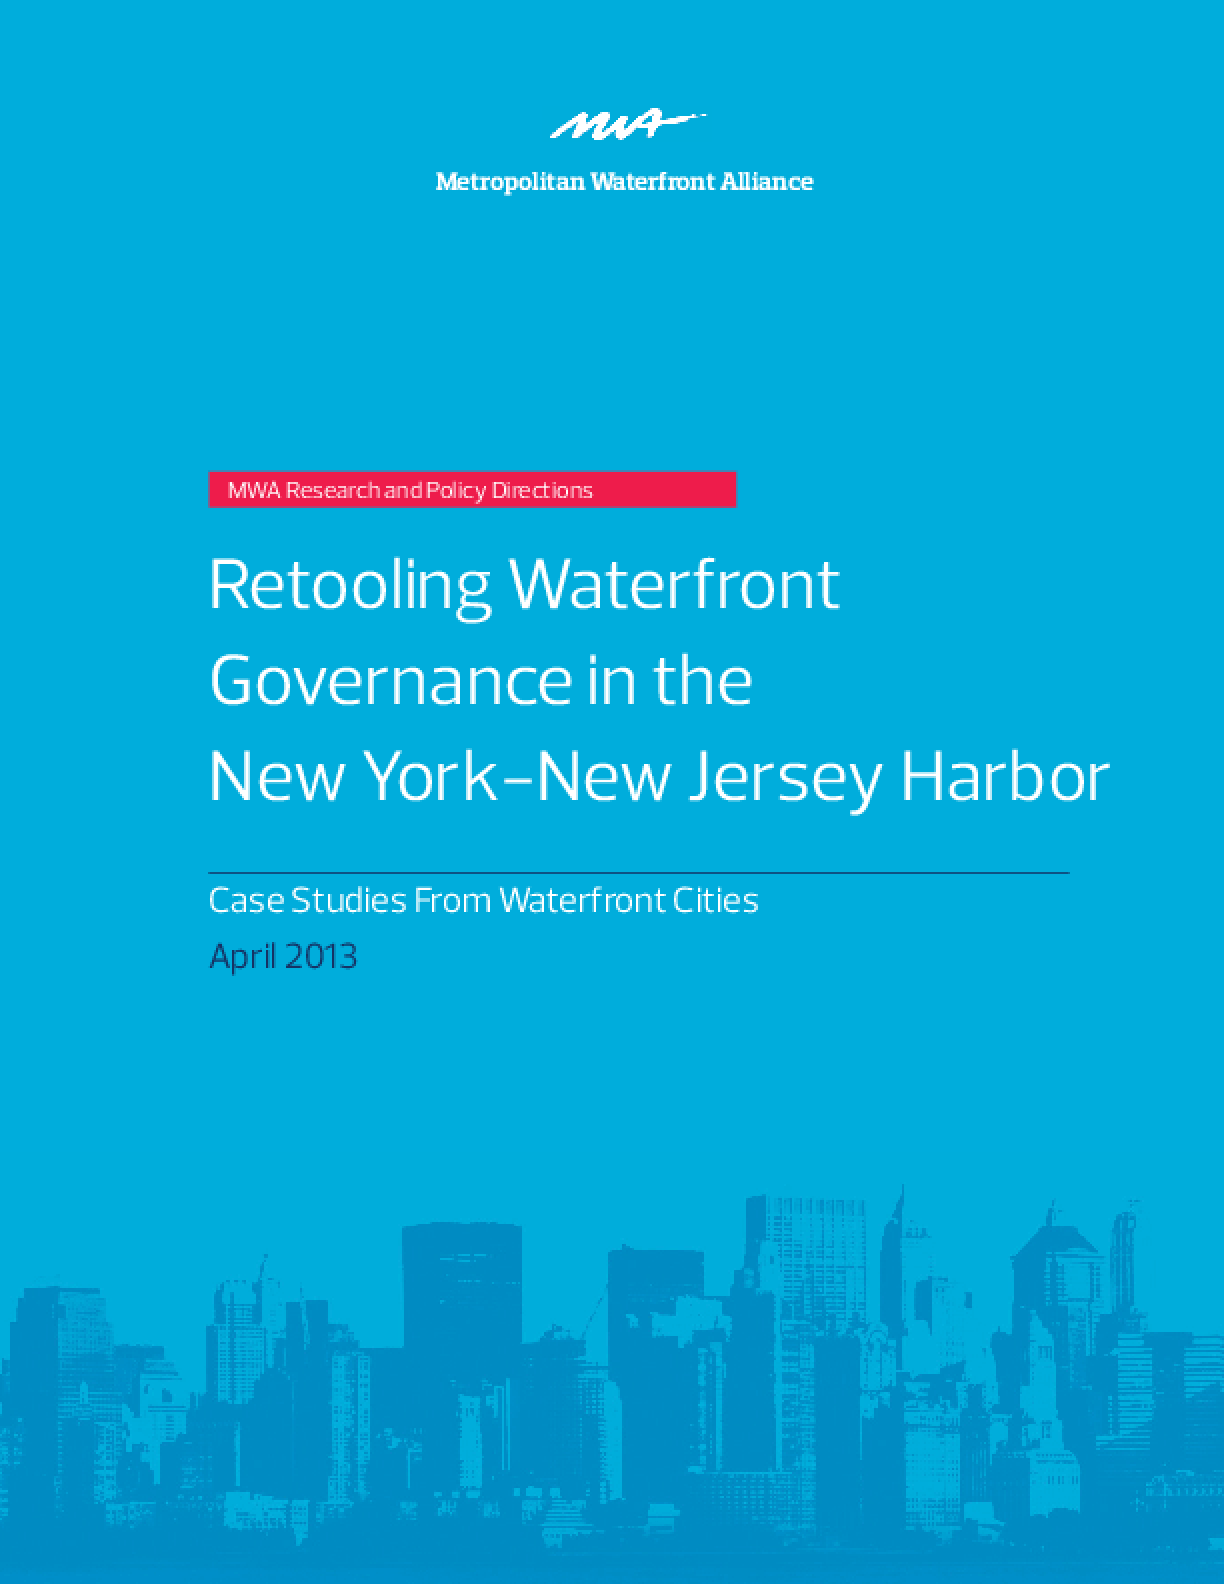 Retooling Waterfront Governance in the New York-New Jersey Harbor: Case Studies from Waterfront Cities